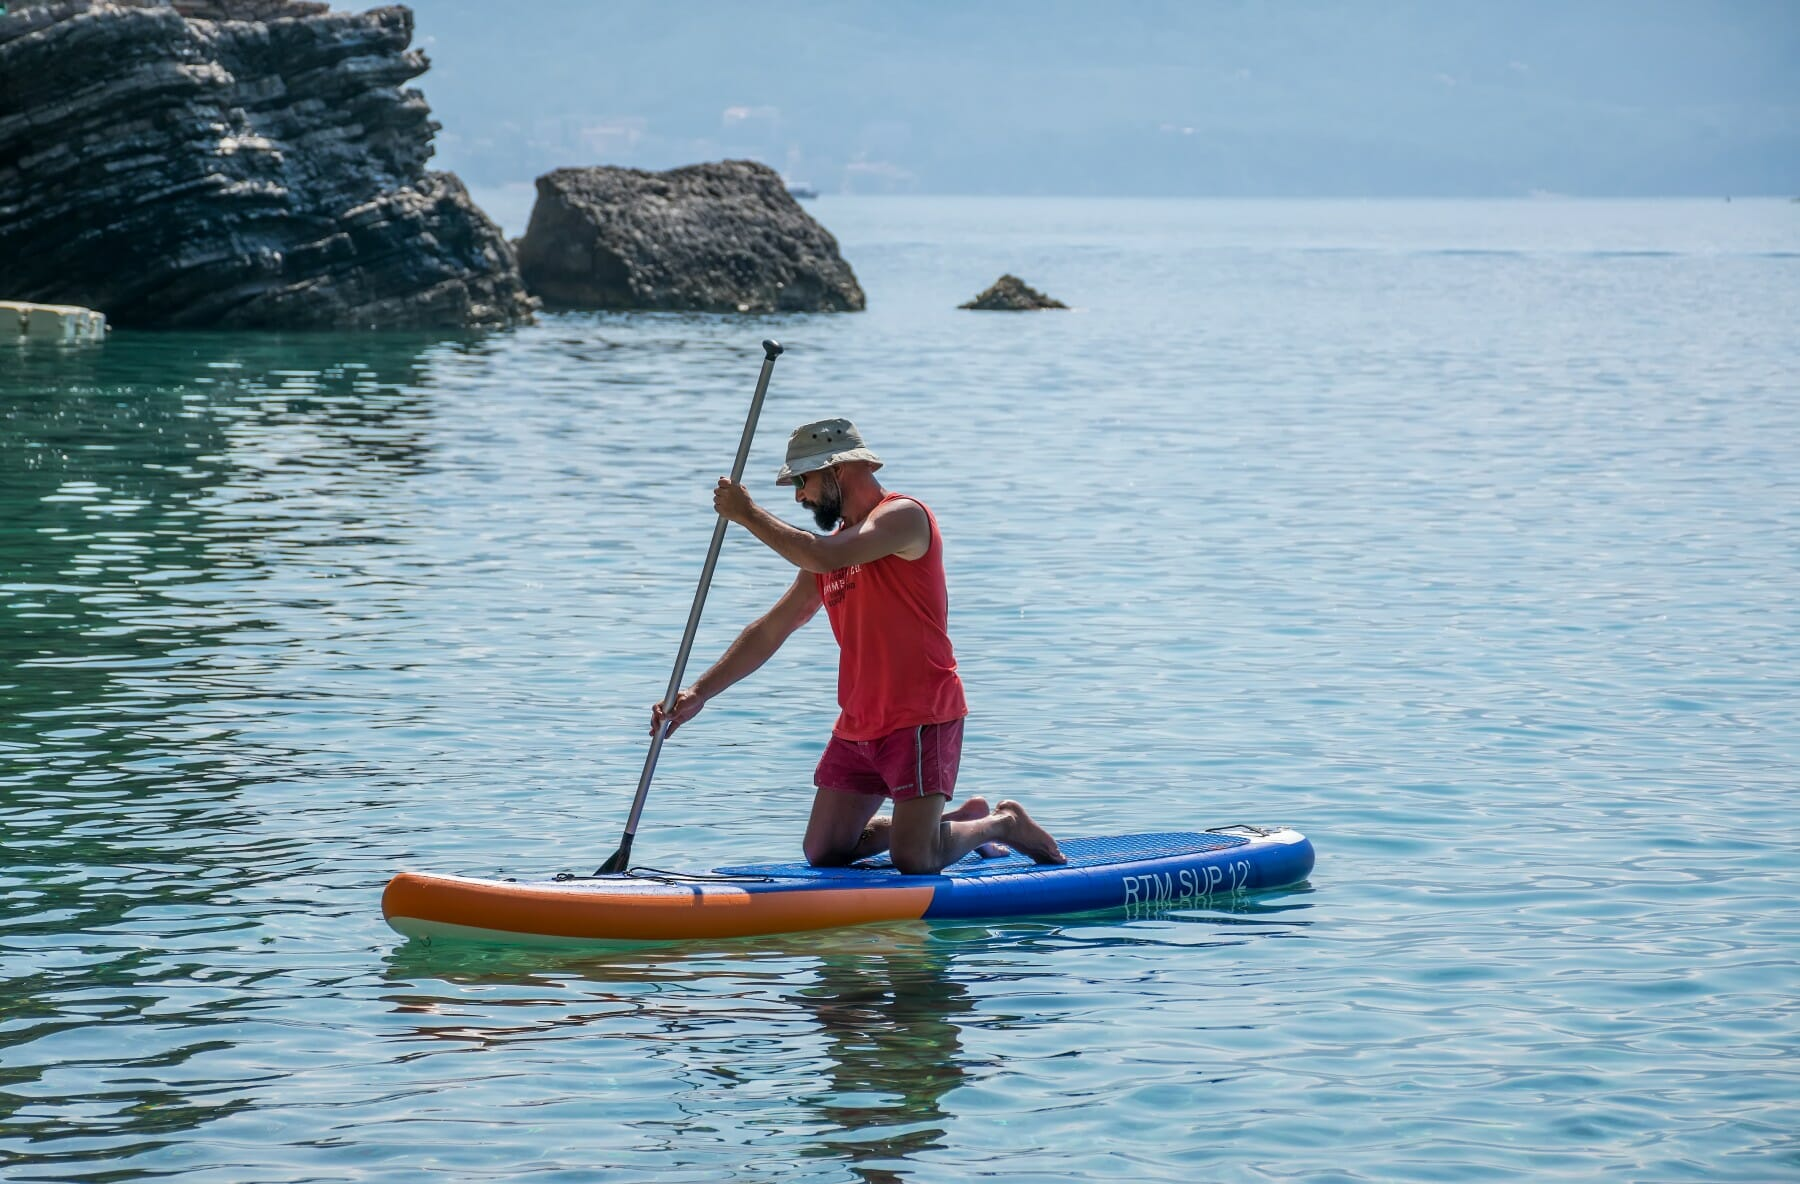 Tourists are engaged in rowing on the board (sup) on the surface of the calm sea